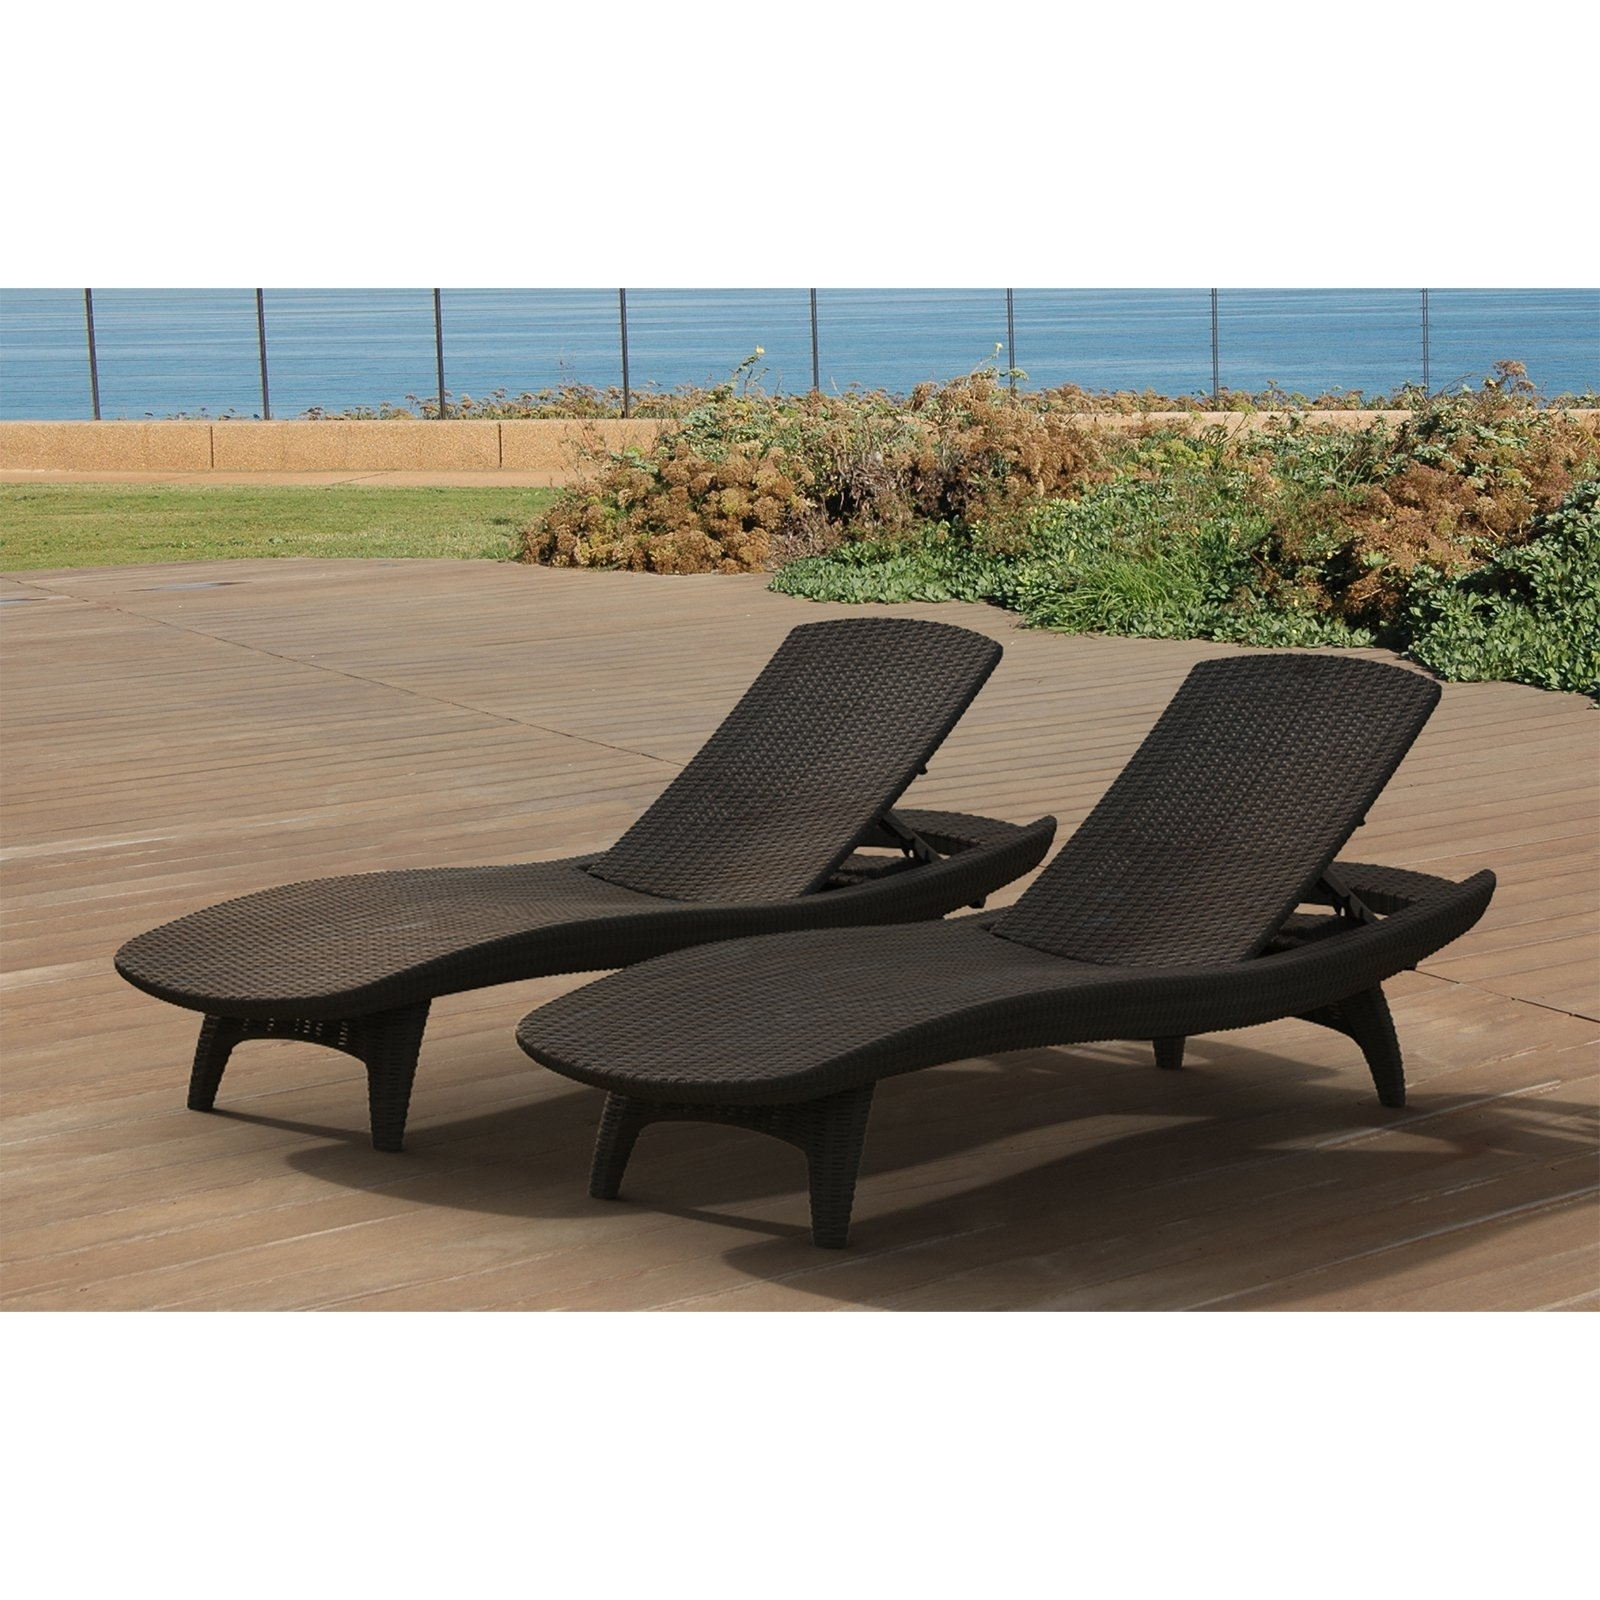 Patio Furniture Outlet Inexpensive Outdoor Furniture Beach Lounge With Latest Outdoor Patio Chaise Lounge Chairs (View 6 of 15)